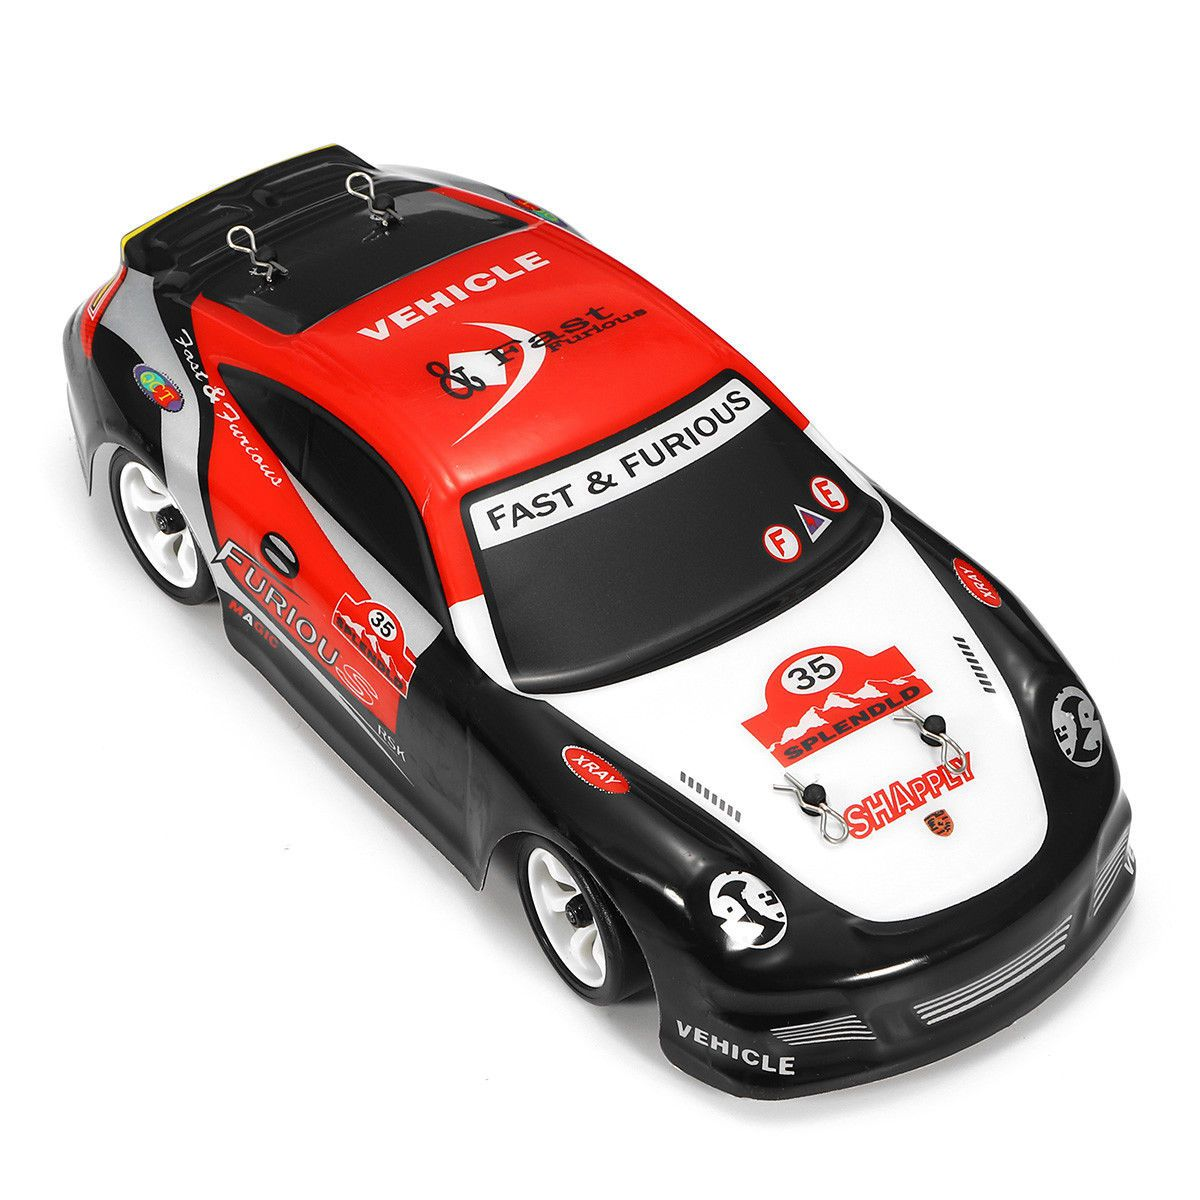 For Wltoys K969 1/28 2.4G 4WD Brushed Remote Control Cars High Speed Drift Car Toy For Kids Original and Fun Gifts EU Plug цены